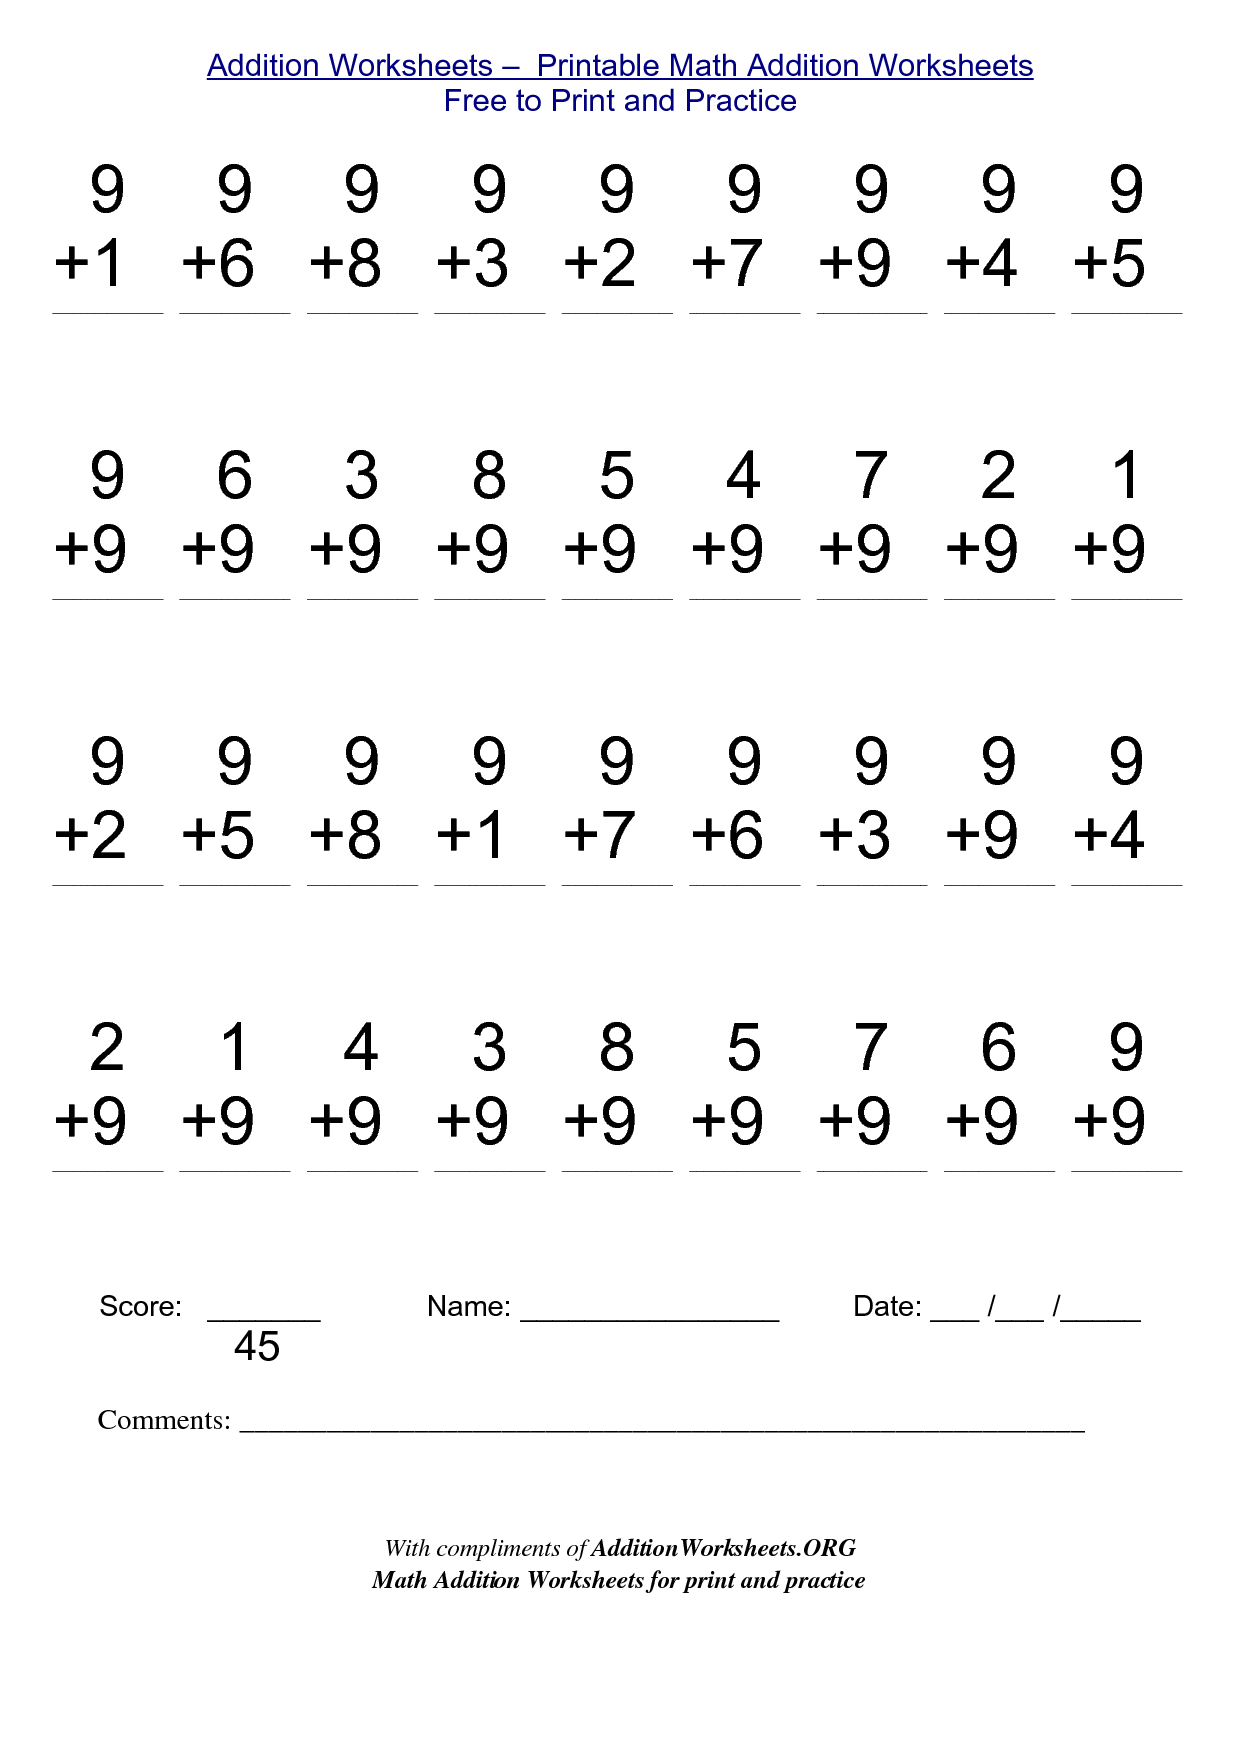 Printable coloring pages with math problems - Math Worksheets For Free To Print Alot Com